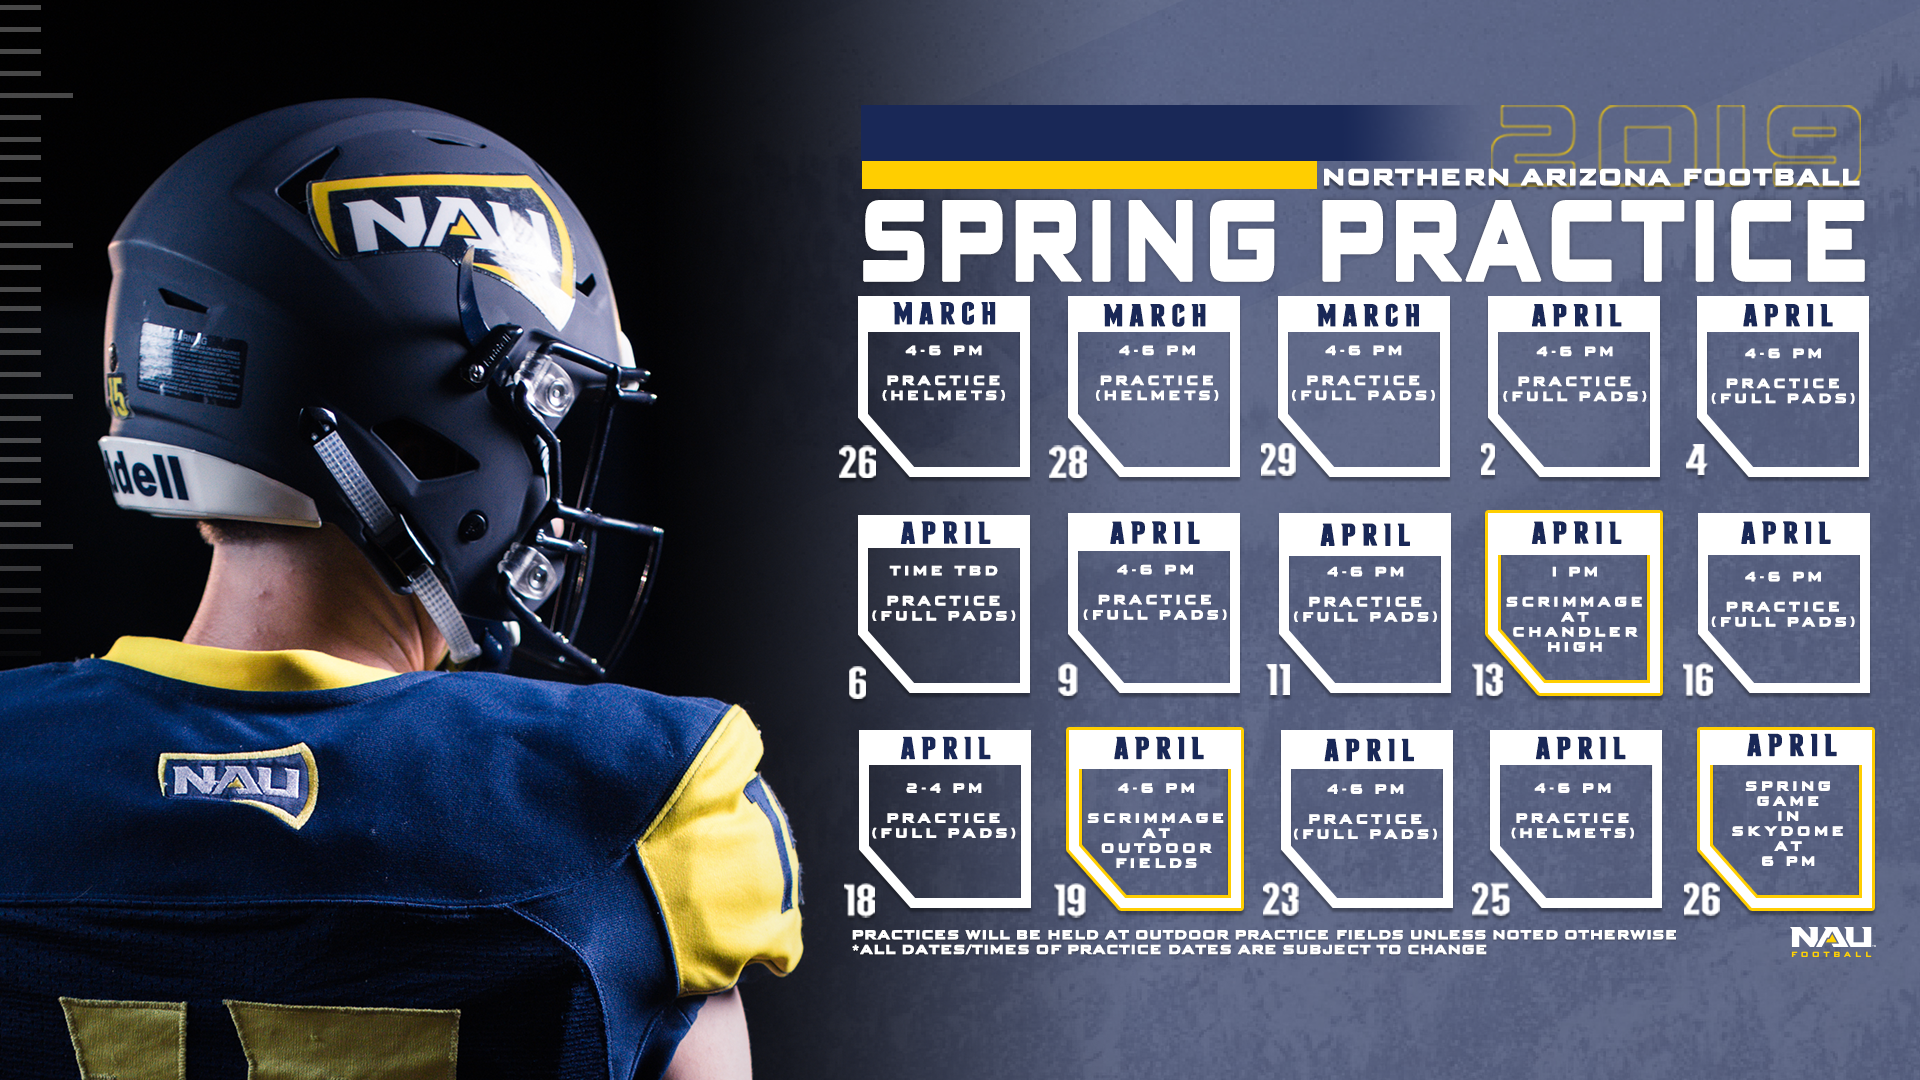 NAU Football to Kickoff Spring Practice on Tuesday, March 26.